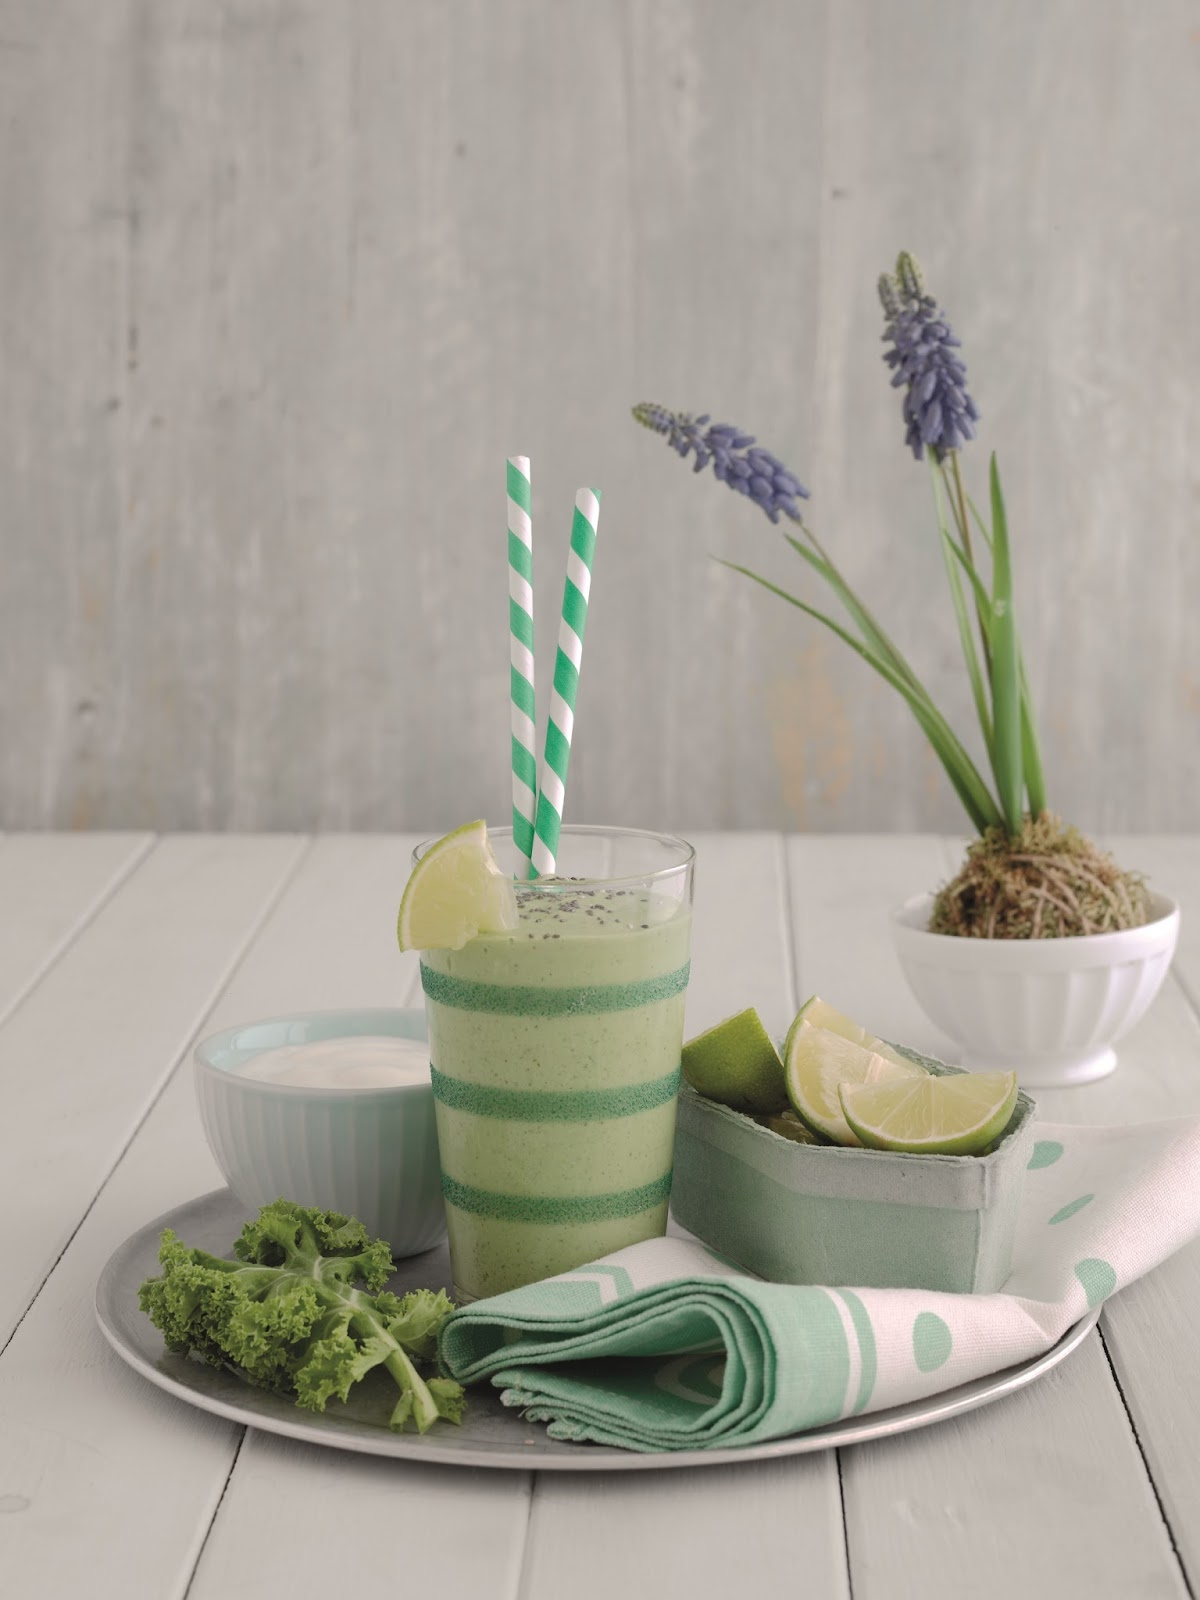 5 Tasty Smoothie Recipes For Summer